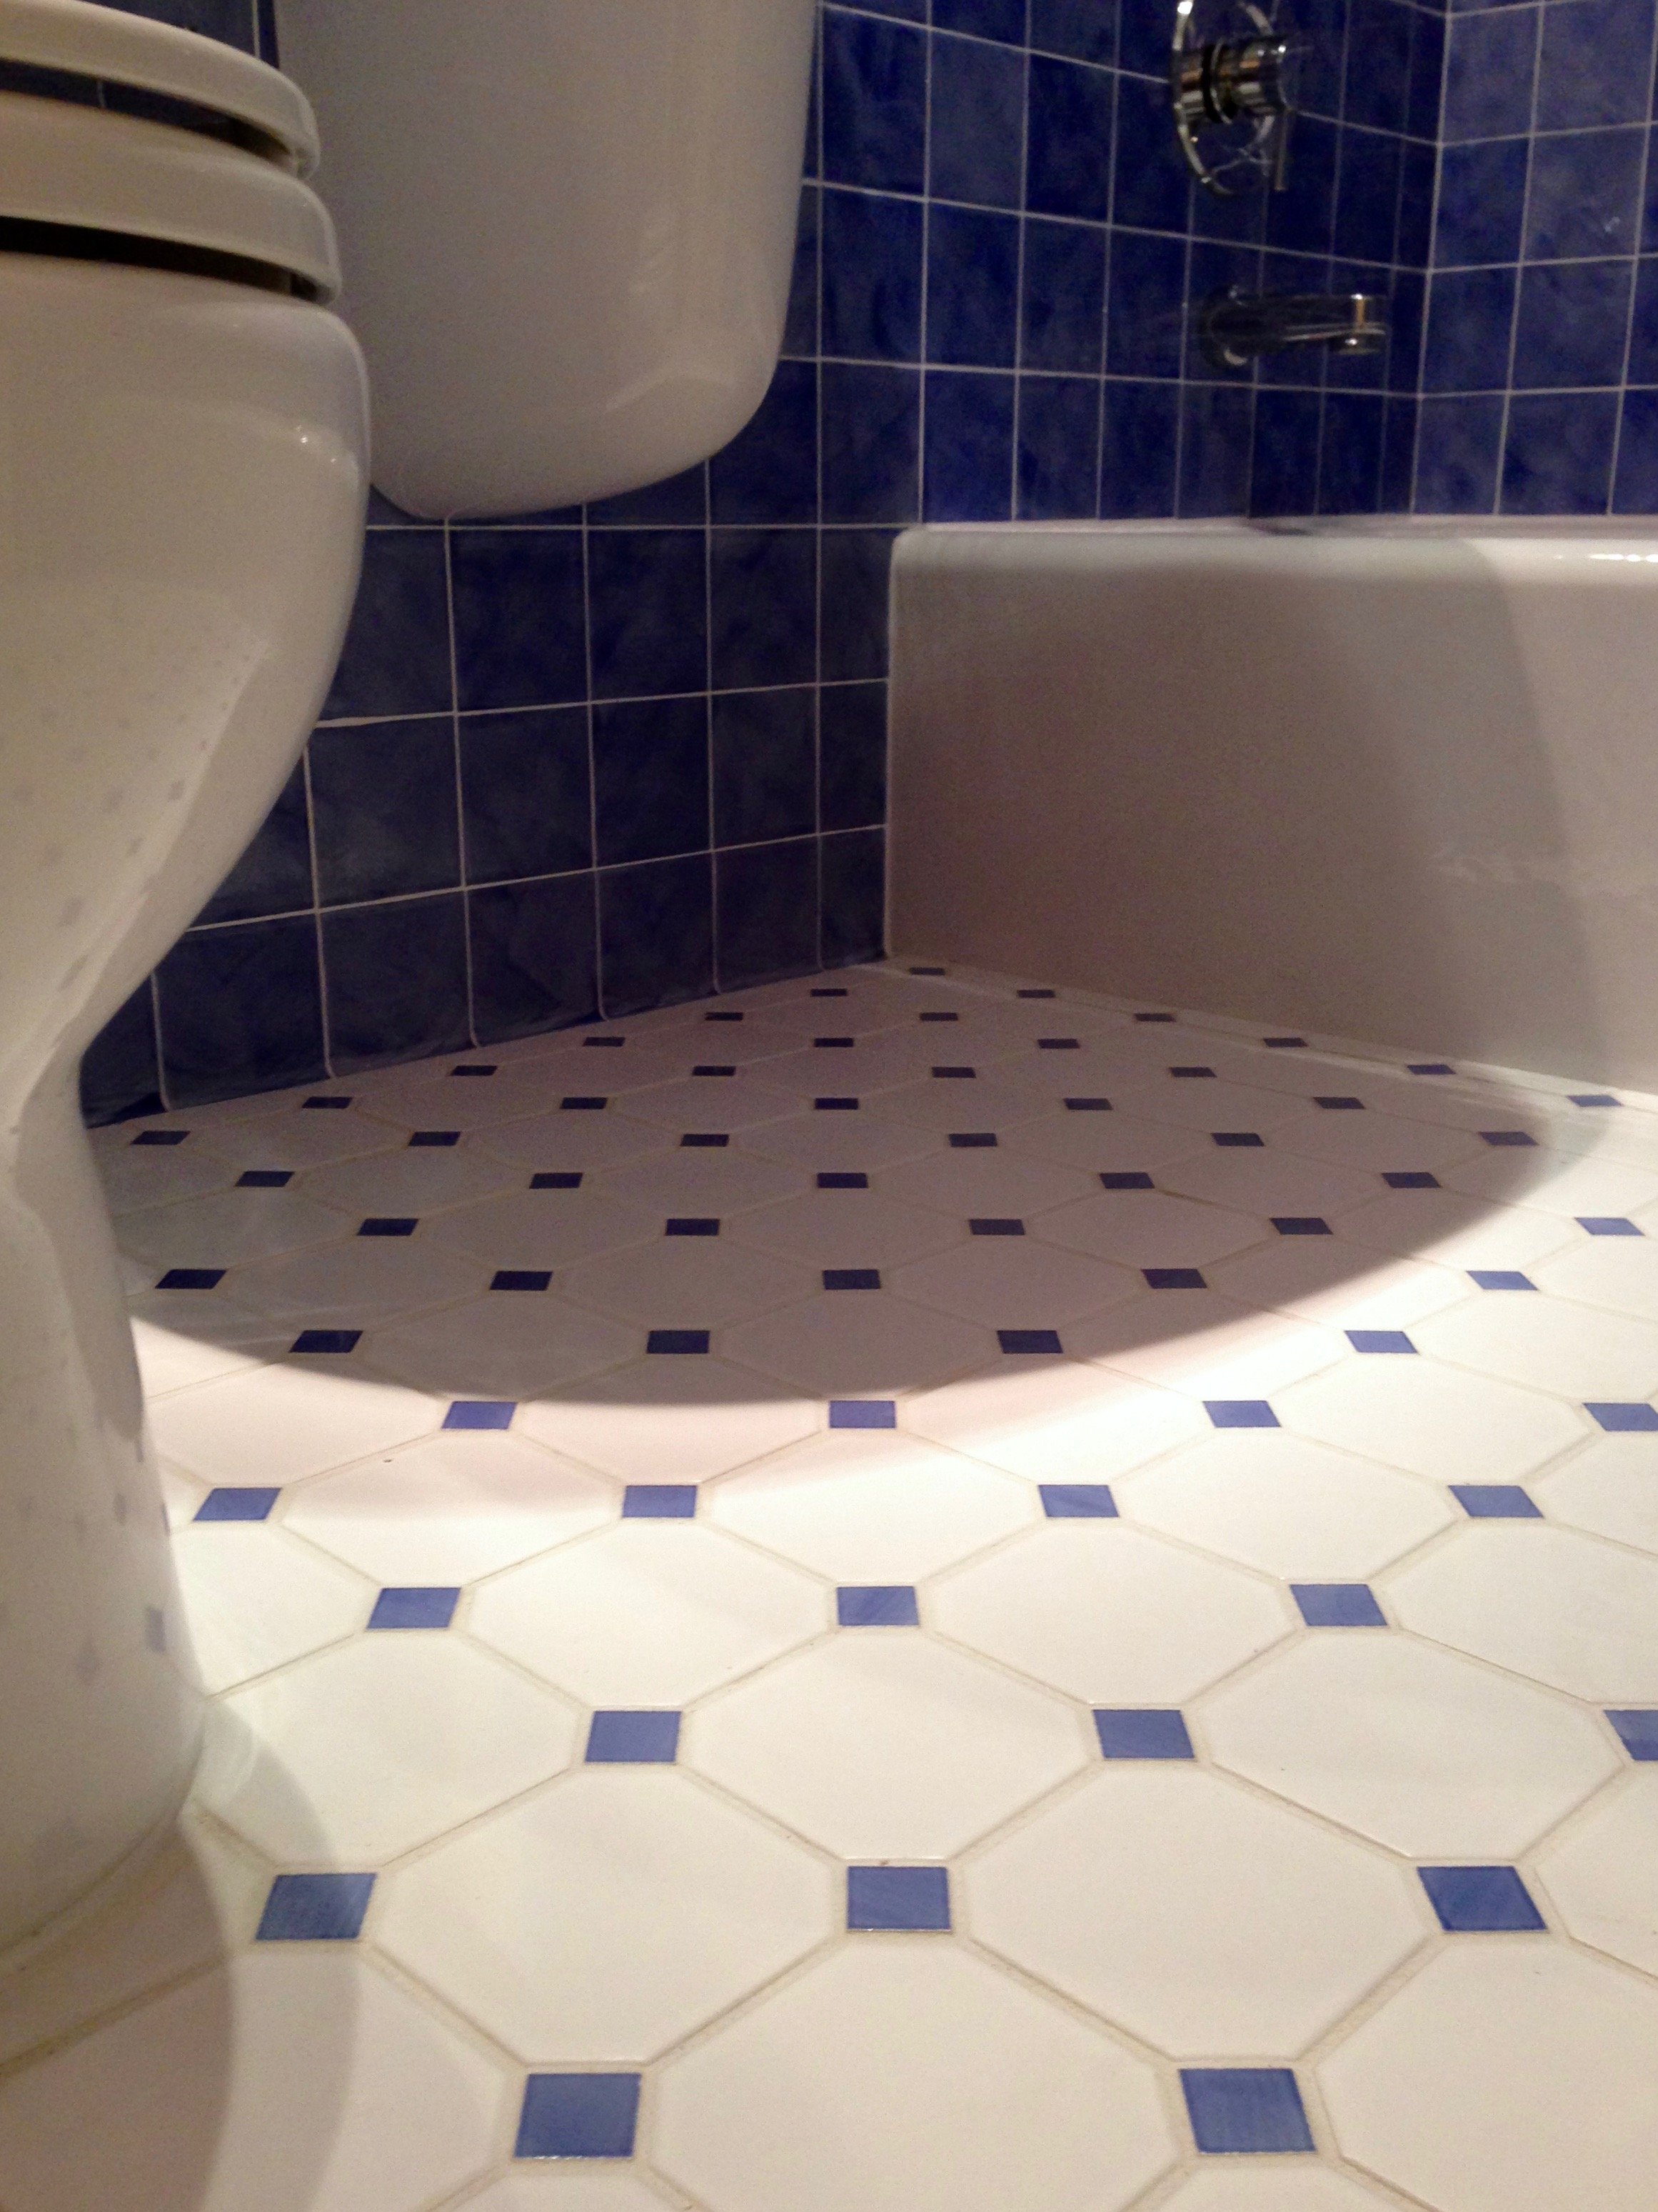 This remodeled bathroom displays beautiful blue & white tiles